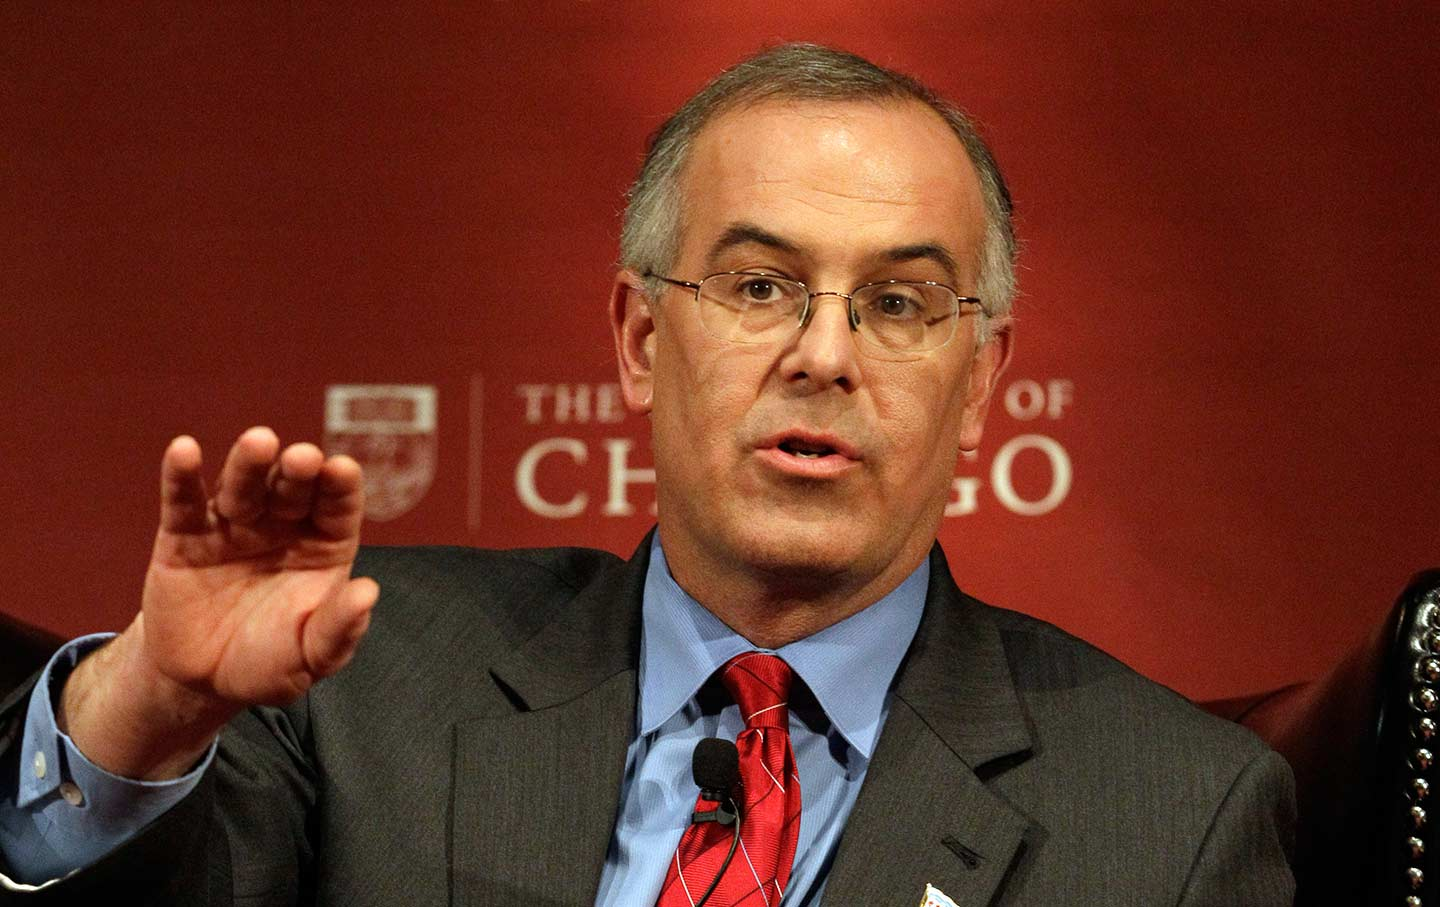 the best american essays 2012 david brooks January 5, 2012  but as david brooks himself went on to point out in his op-ed:  studying the humanities improves  but as many before us have rightly pointed  out, in an unpredictable marketplace this kind of versatility is  back to top.